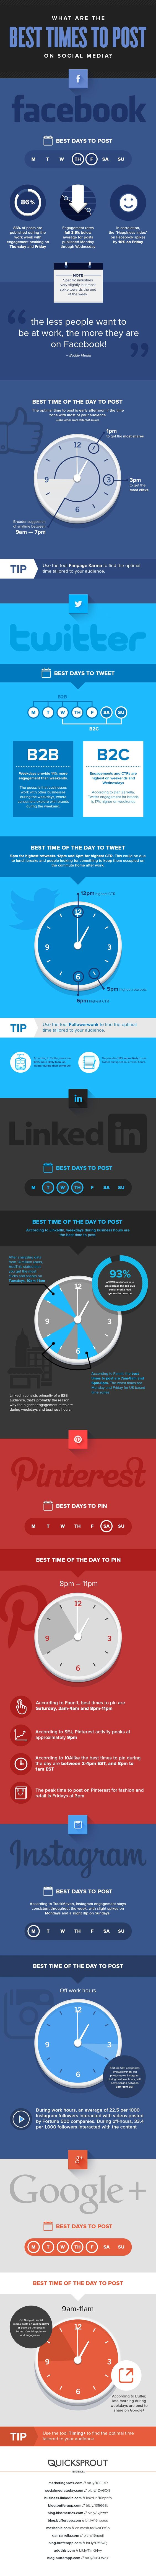 What Are The Best Times to Post on Social Media #infographic #SocialMedia